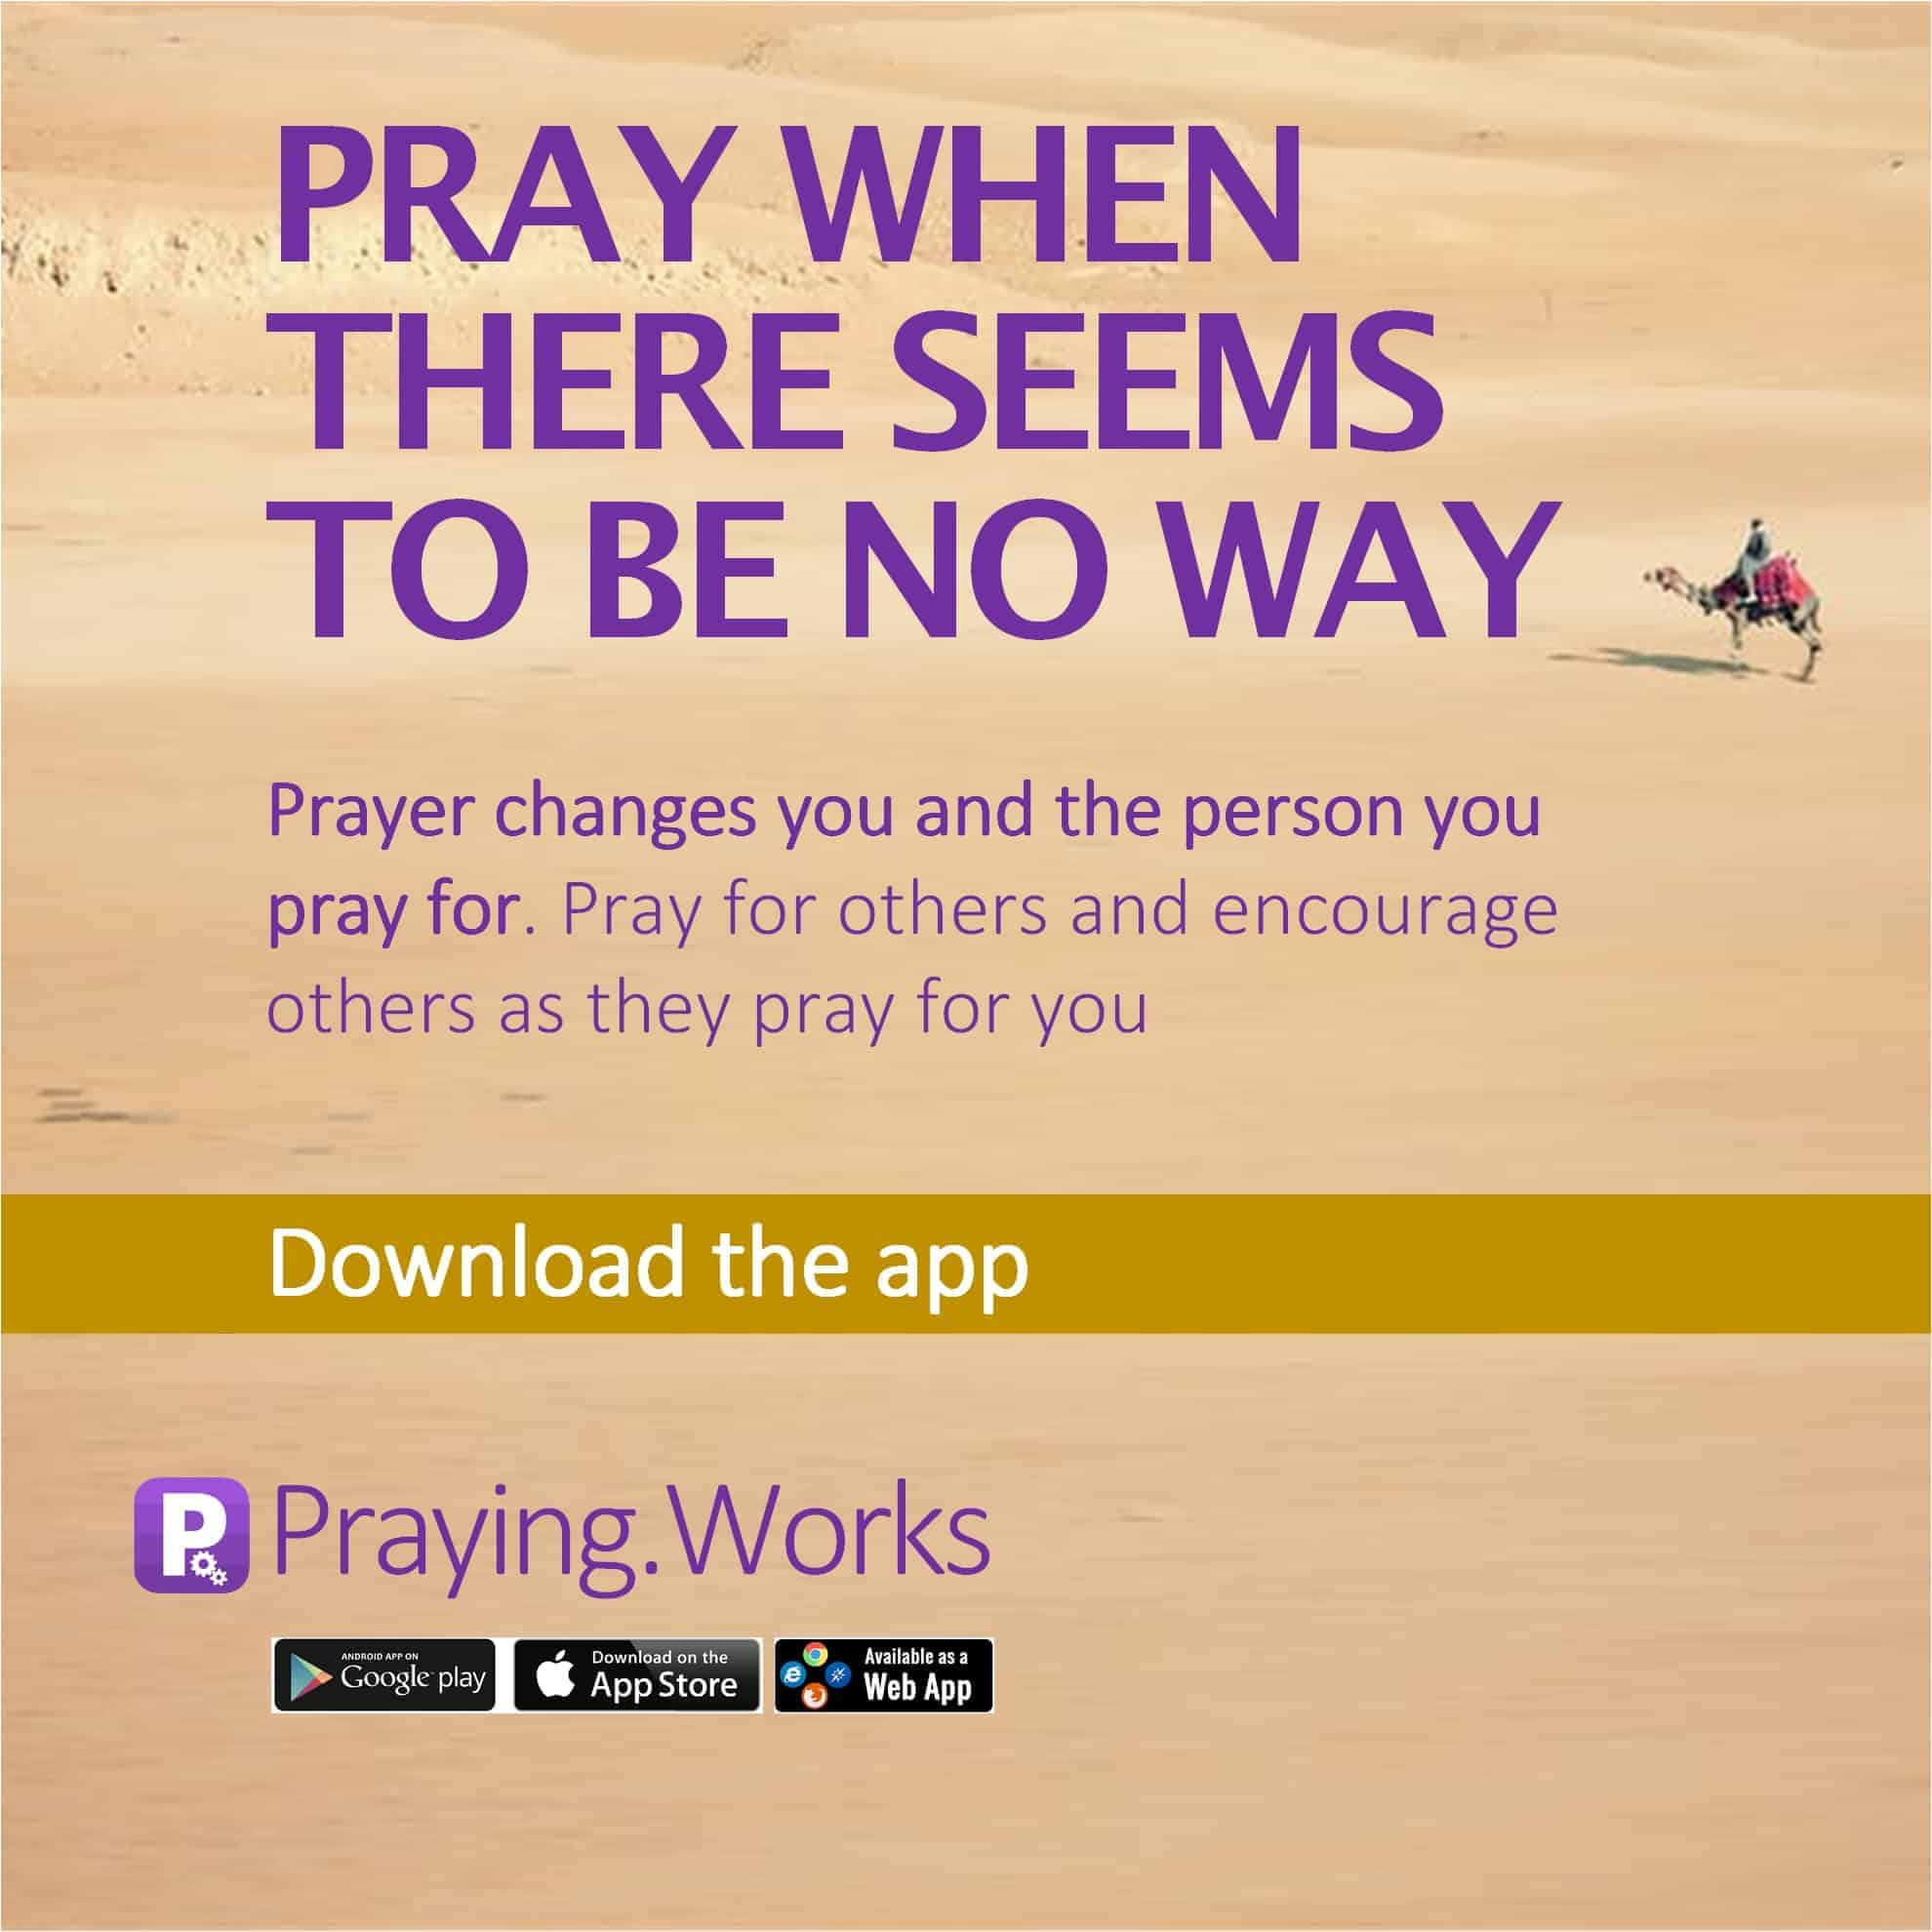 Pray When There Seems to Be No Way